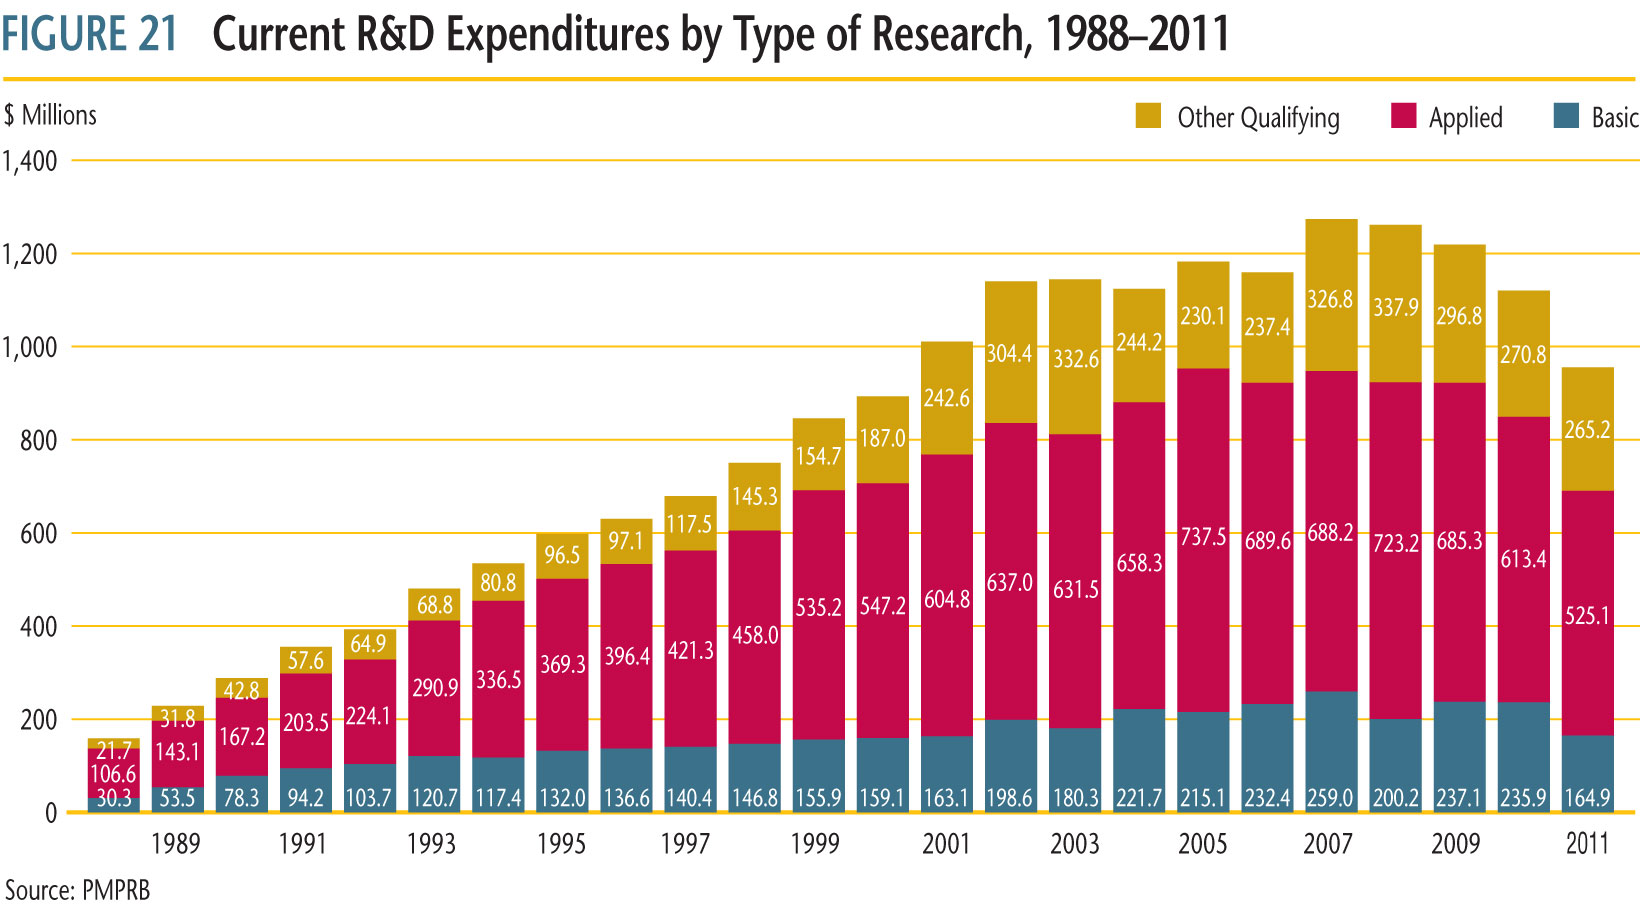 current R&D expenditures by type of research 1988 to 2011